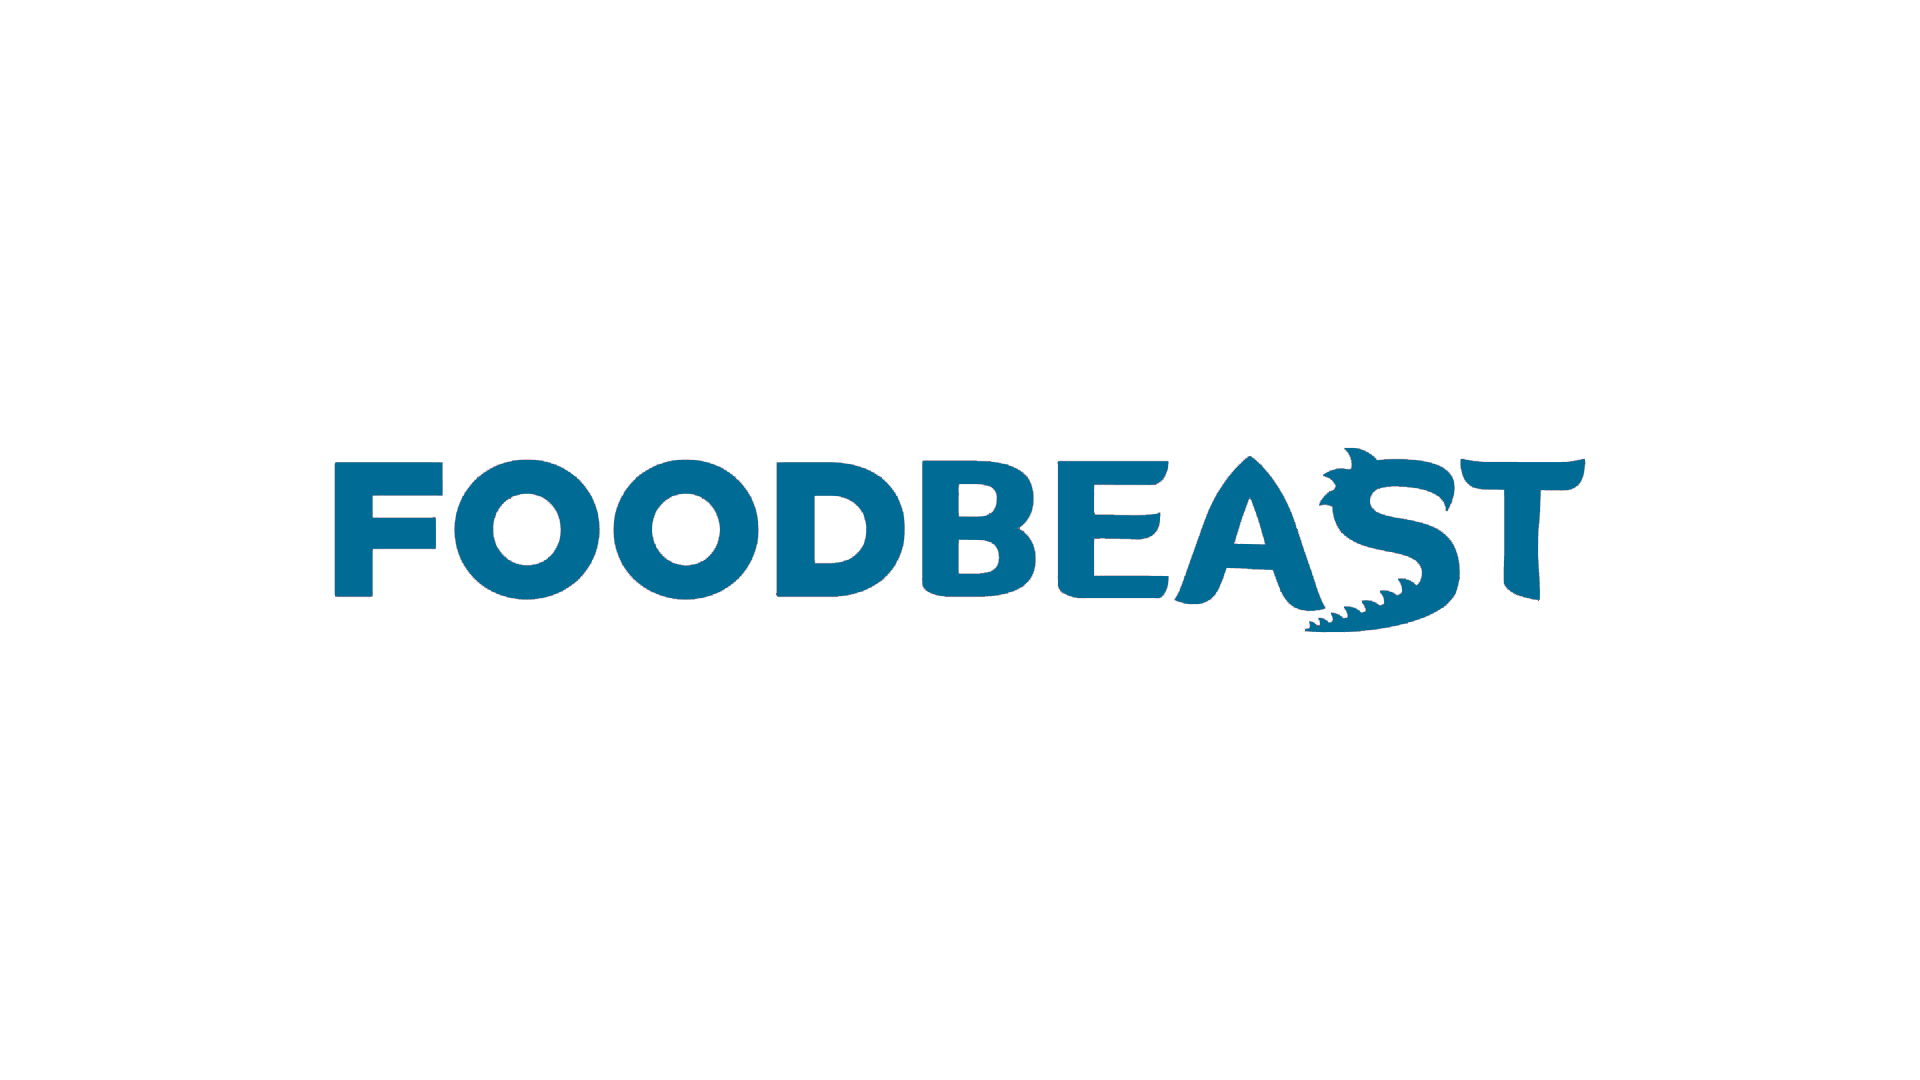 foodbeast.png